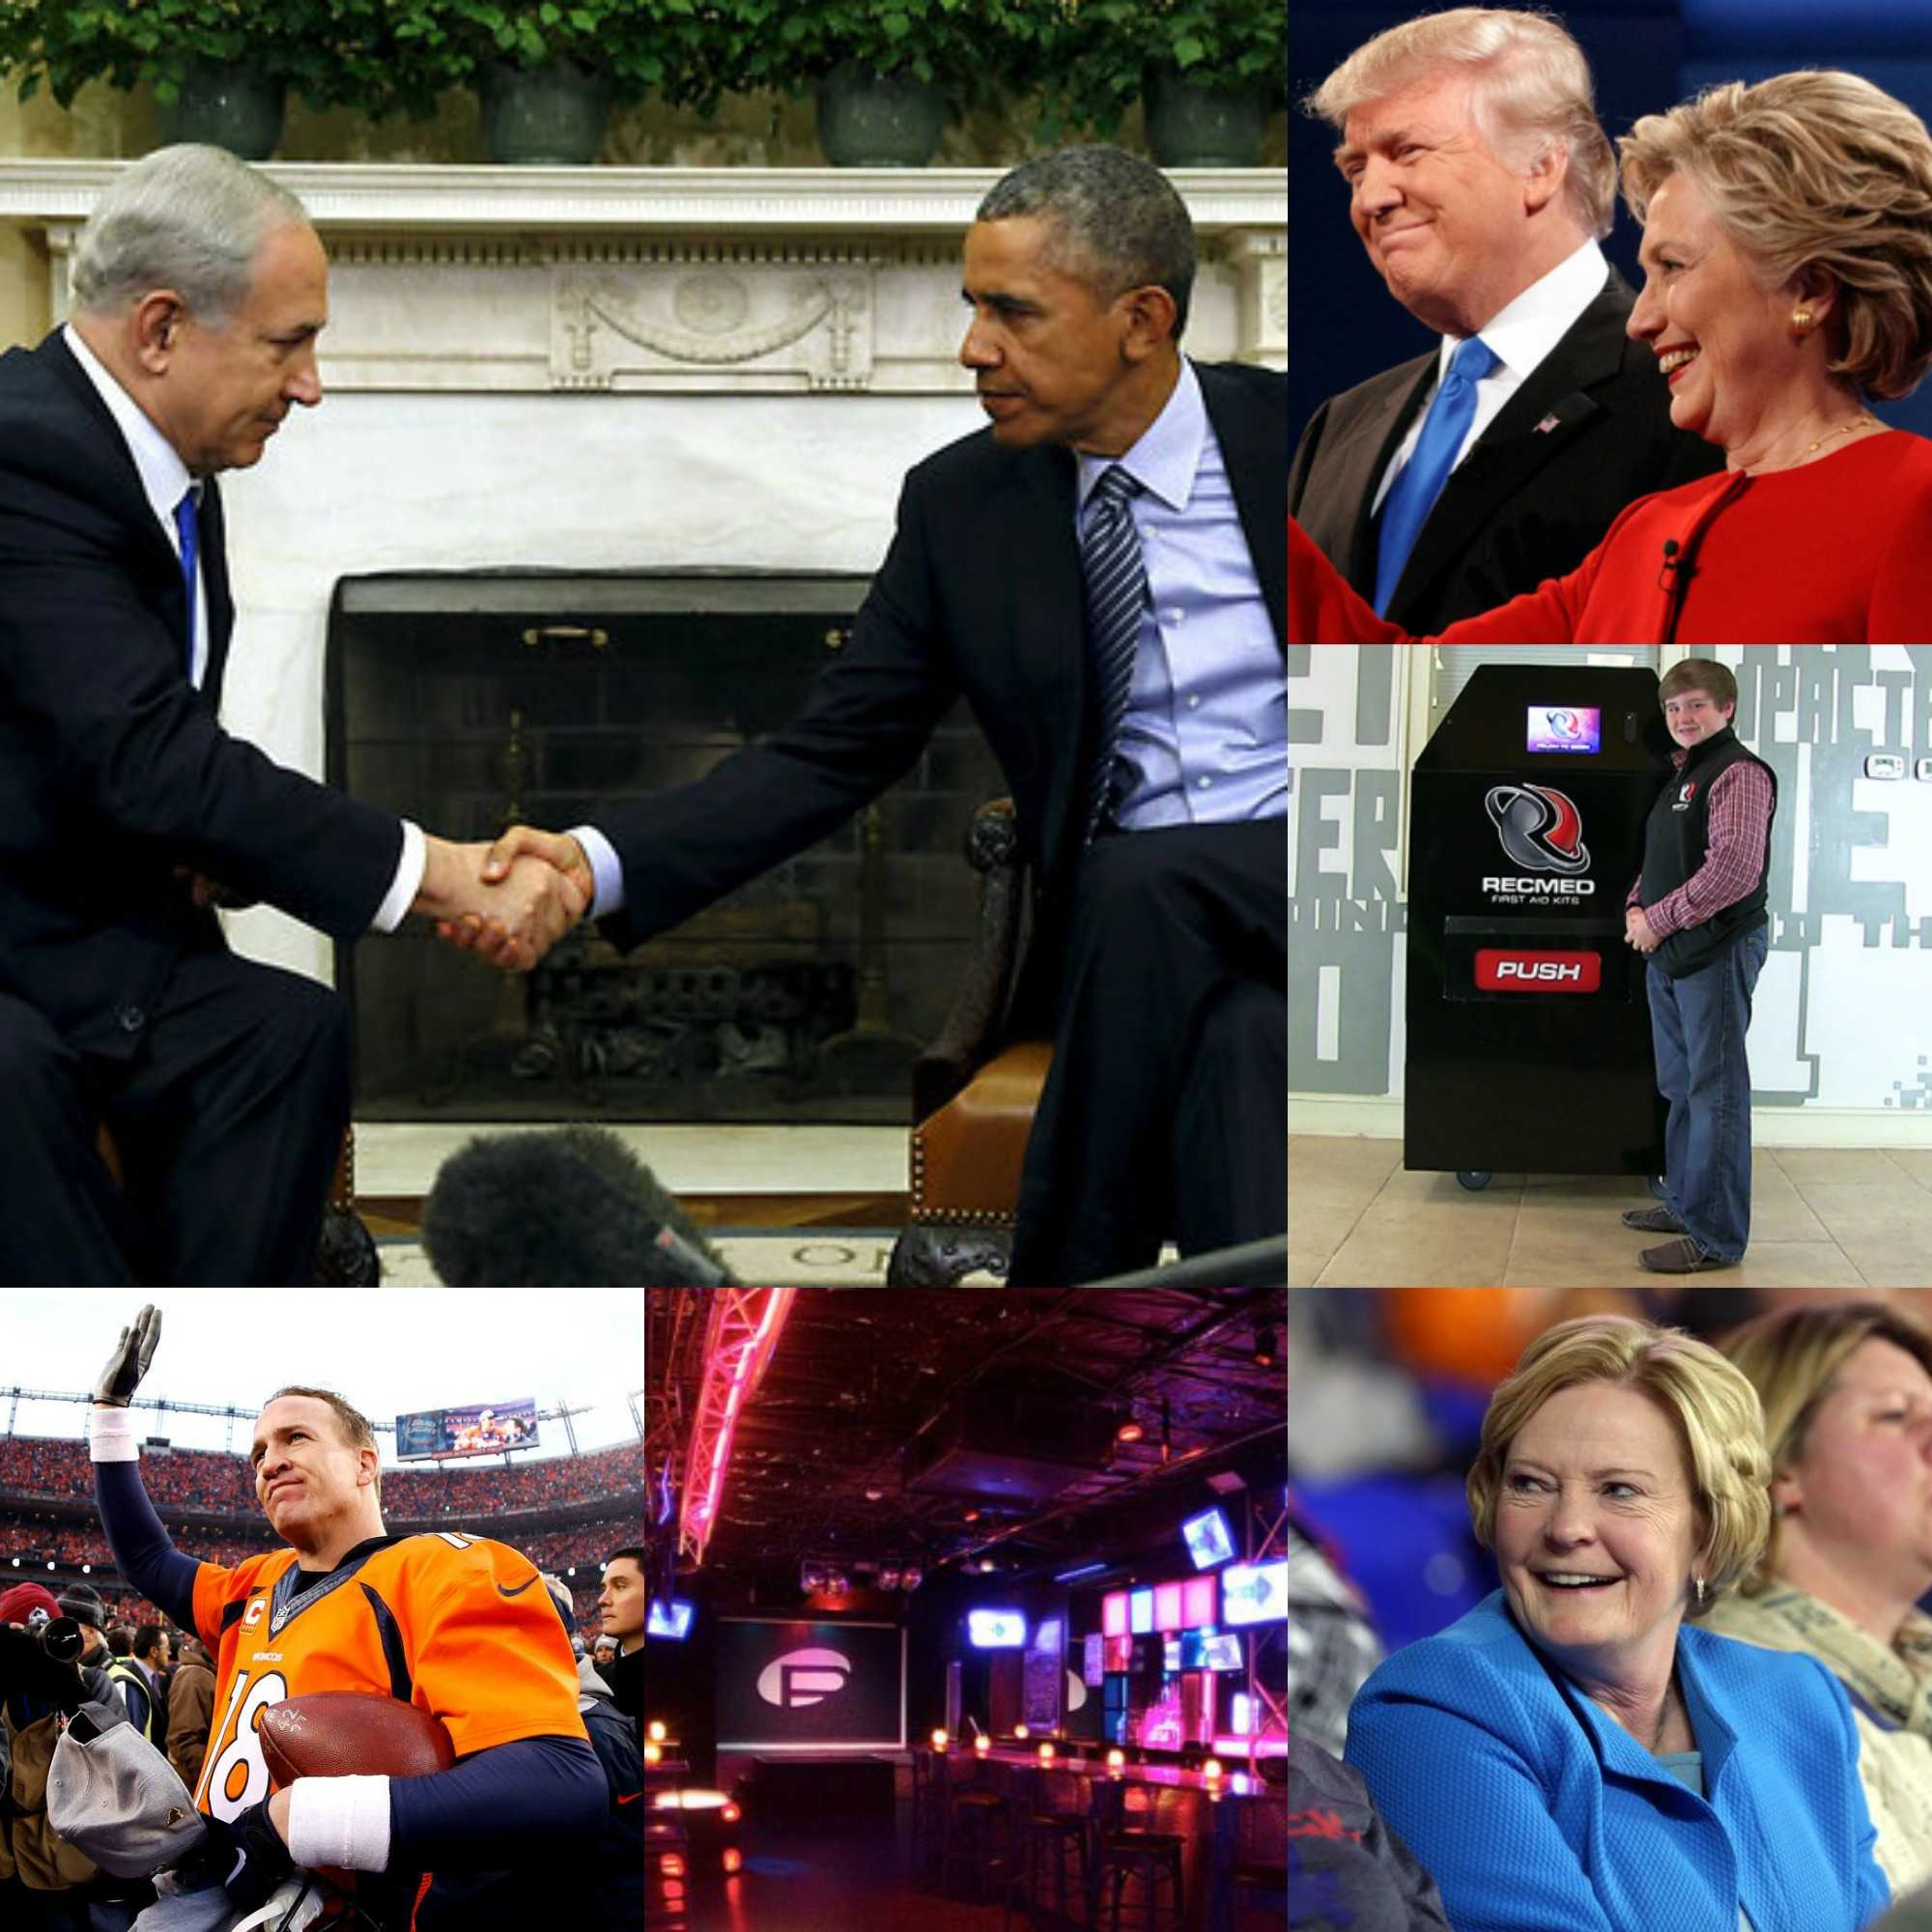 A few things that occurred in 2016